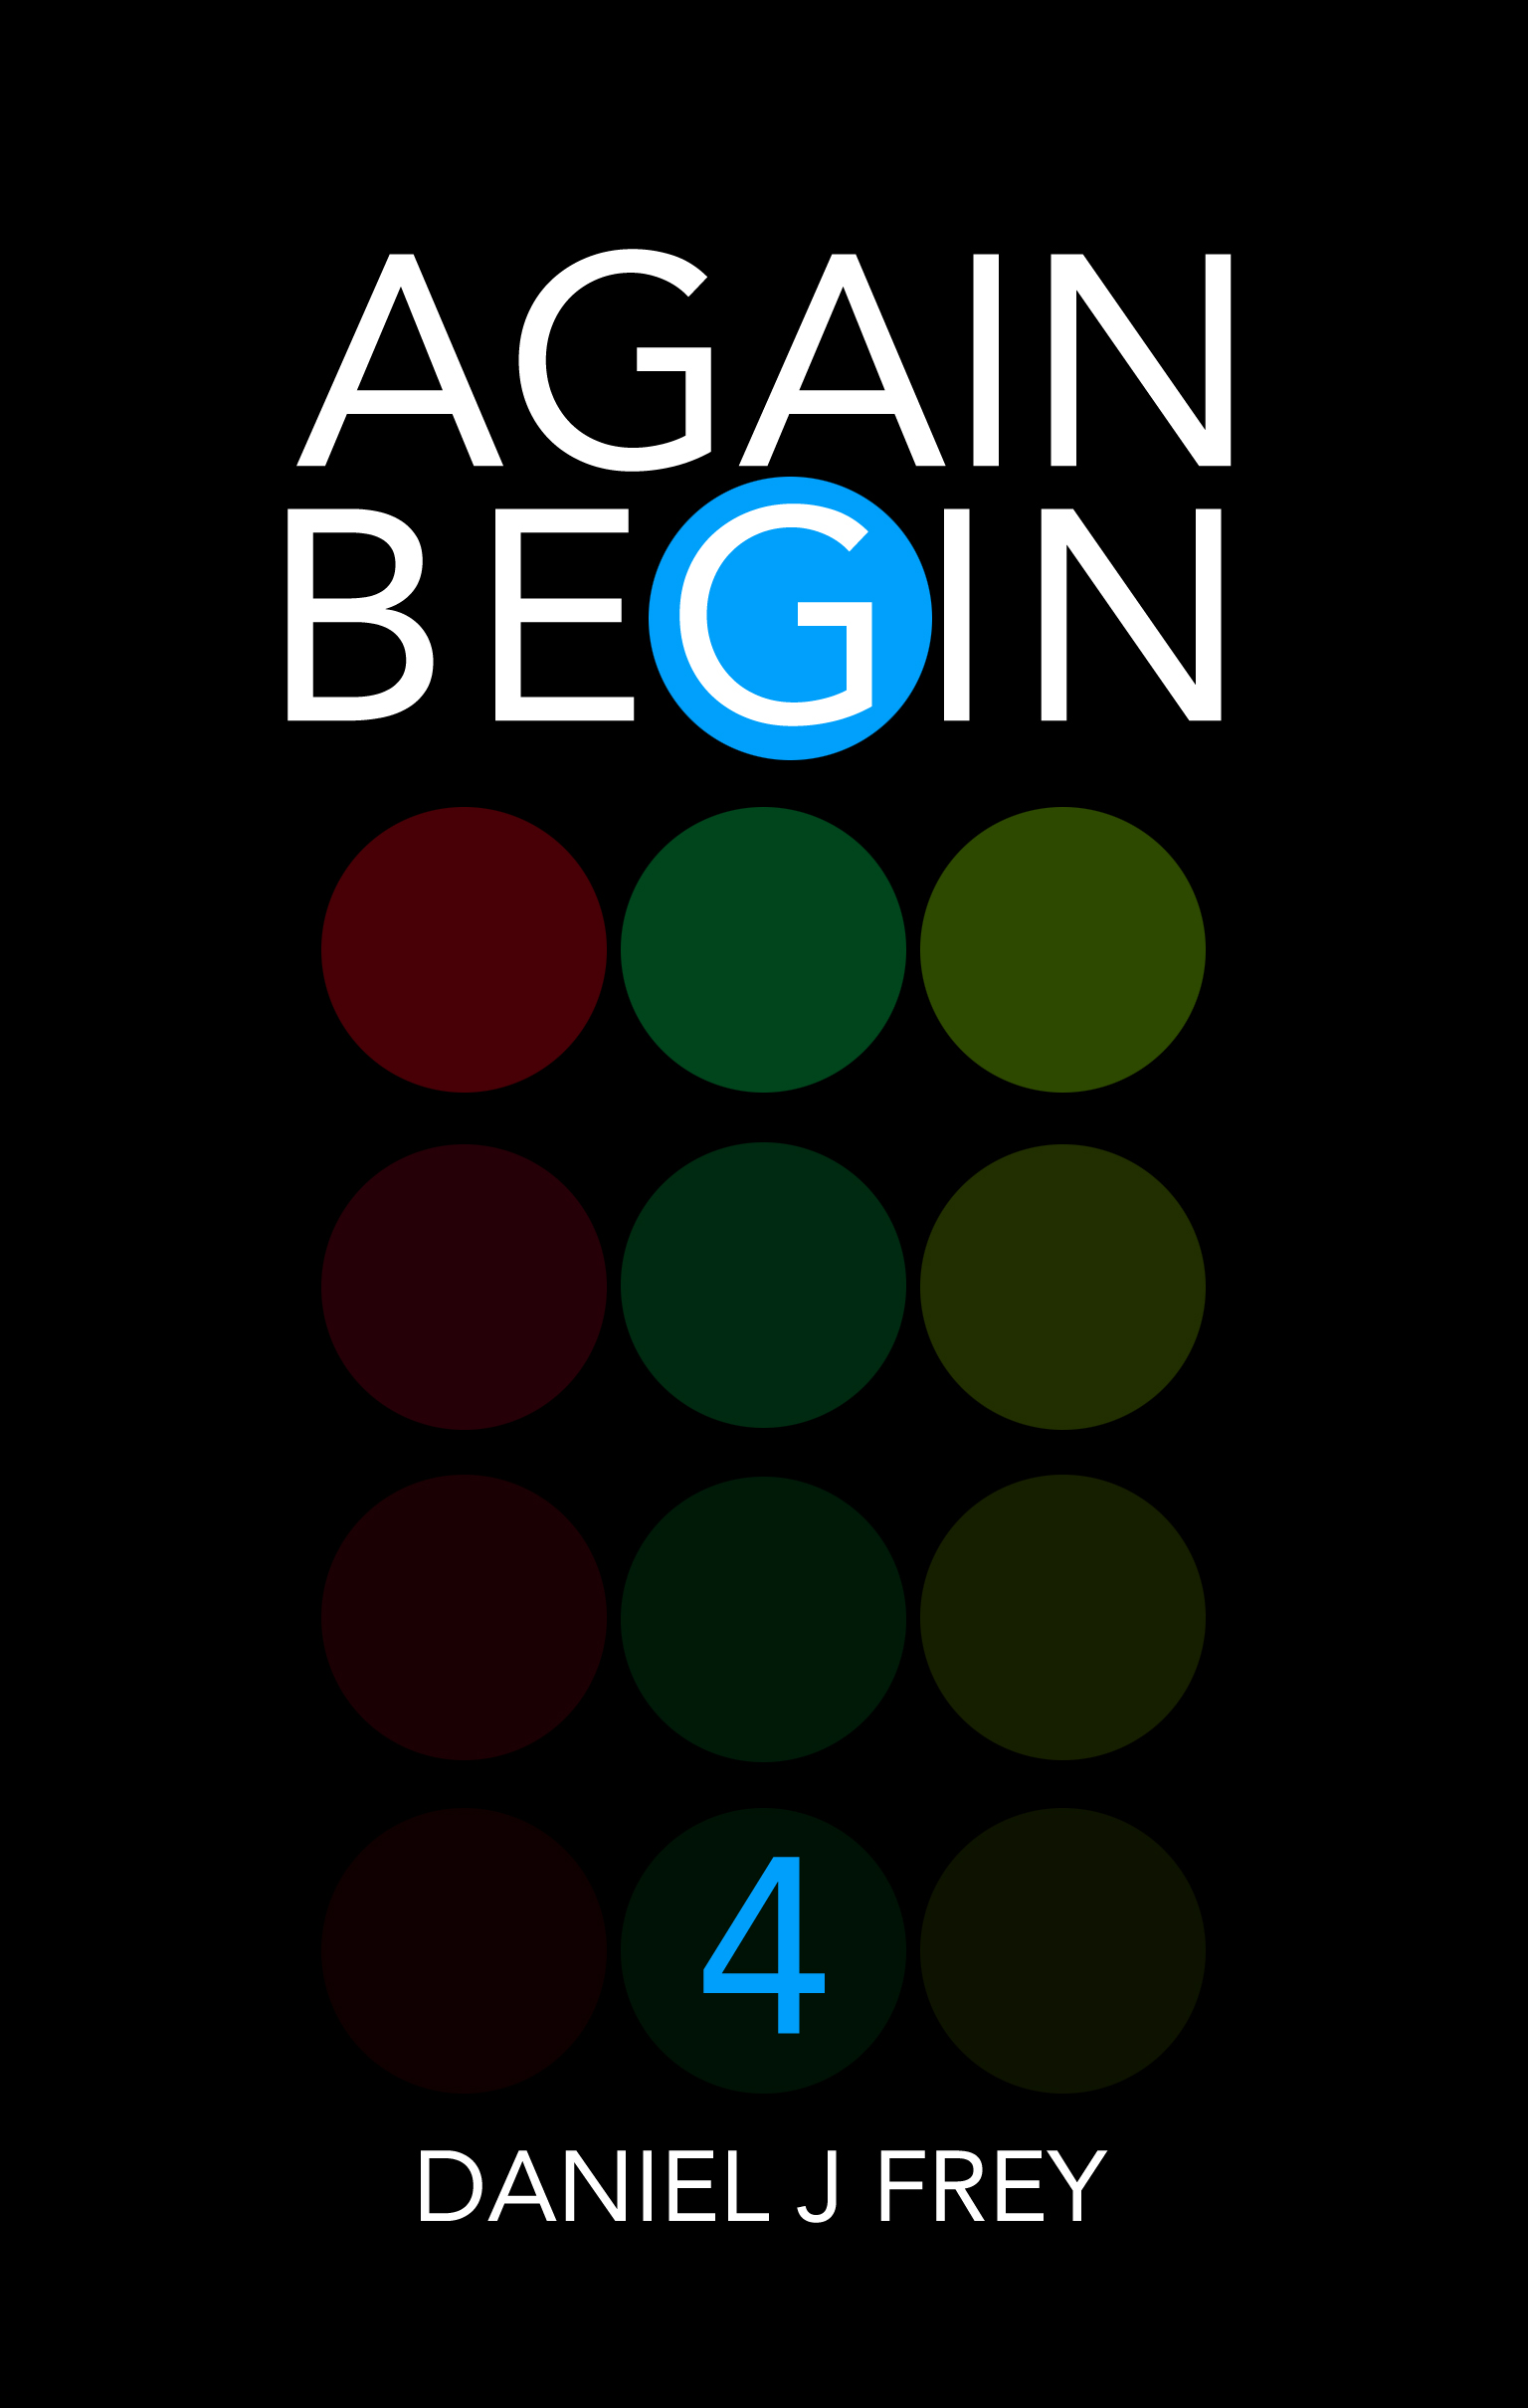 Again Begin 4 - The Test